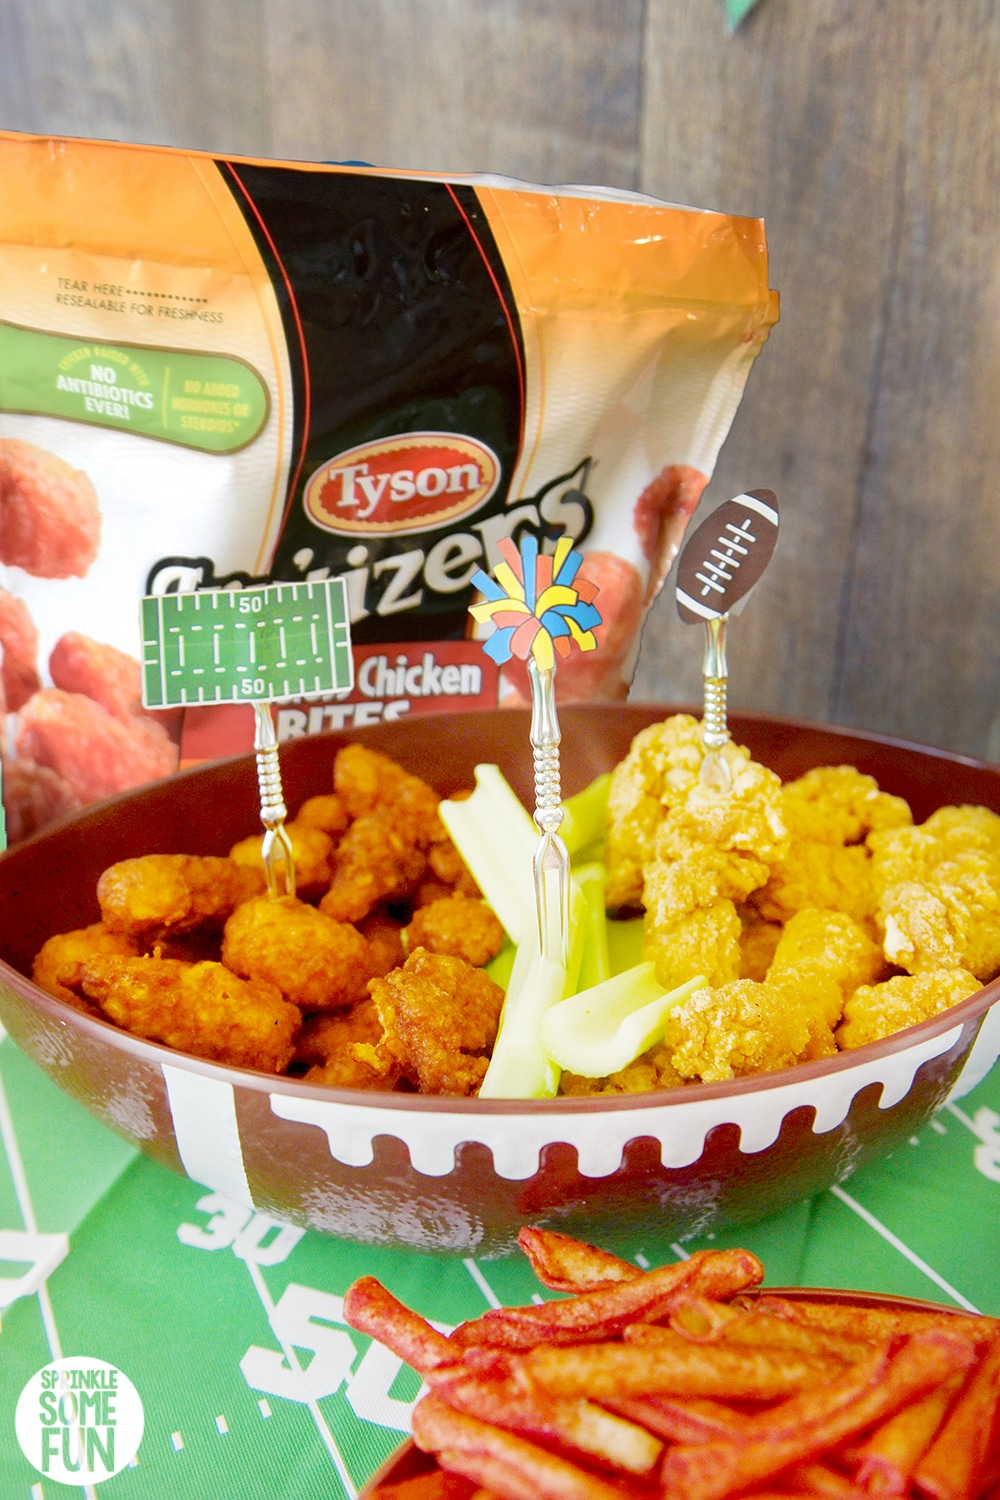 Tyson chicken in football platter